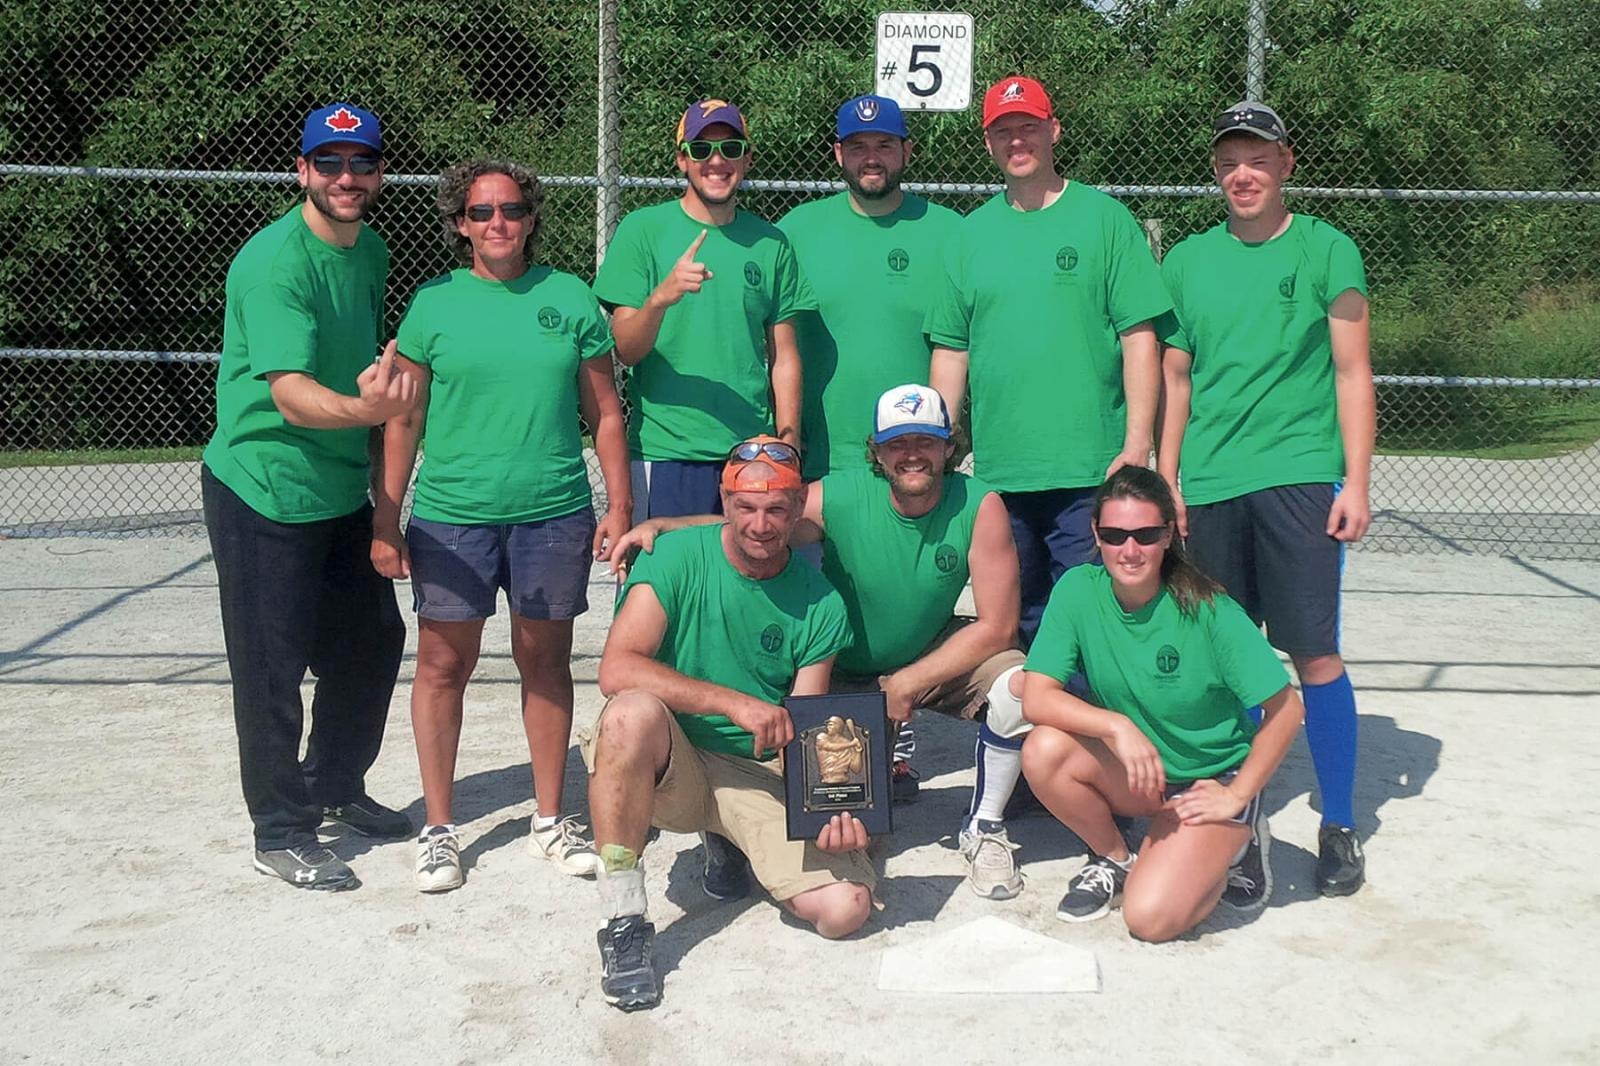 Sheridan Nurseries captured the 2014 Toronto Chapter baseball championship.